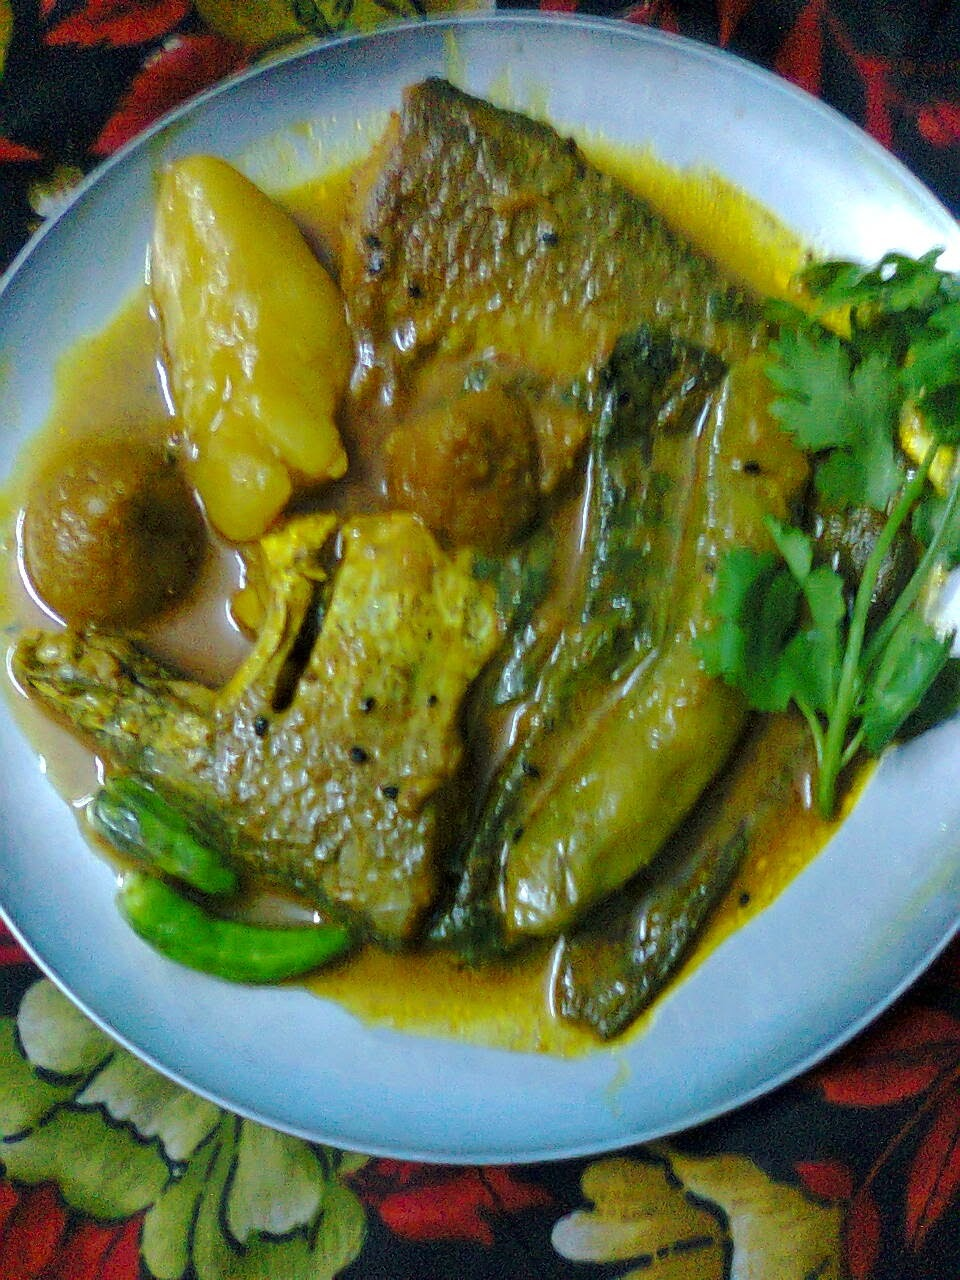 Foli Fish (Bronze featherback) Light Gravy With Vegetable.